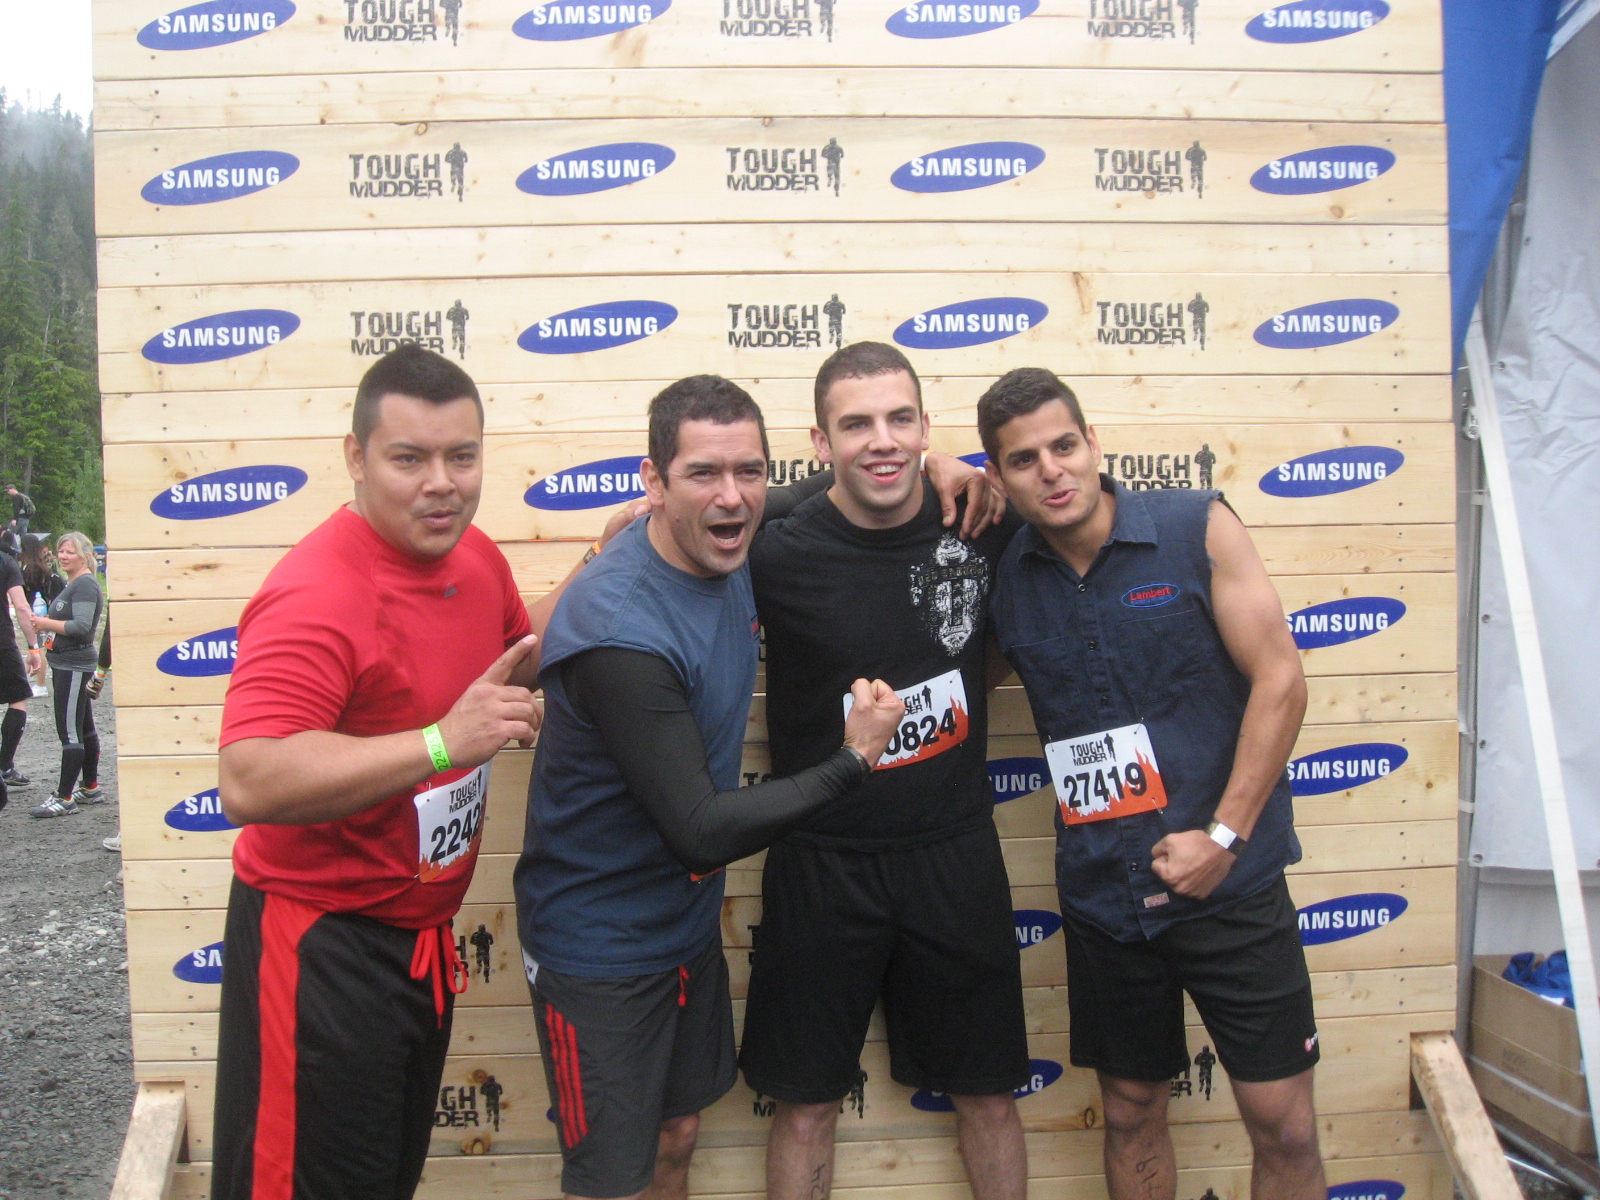 Tough Mudder Competition Pic - Getting Pumped Up!